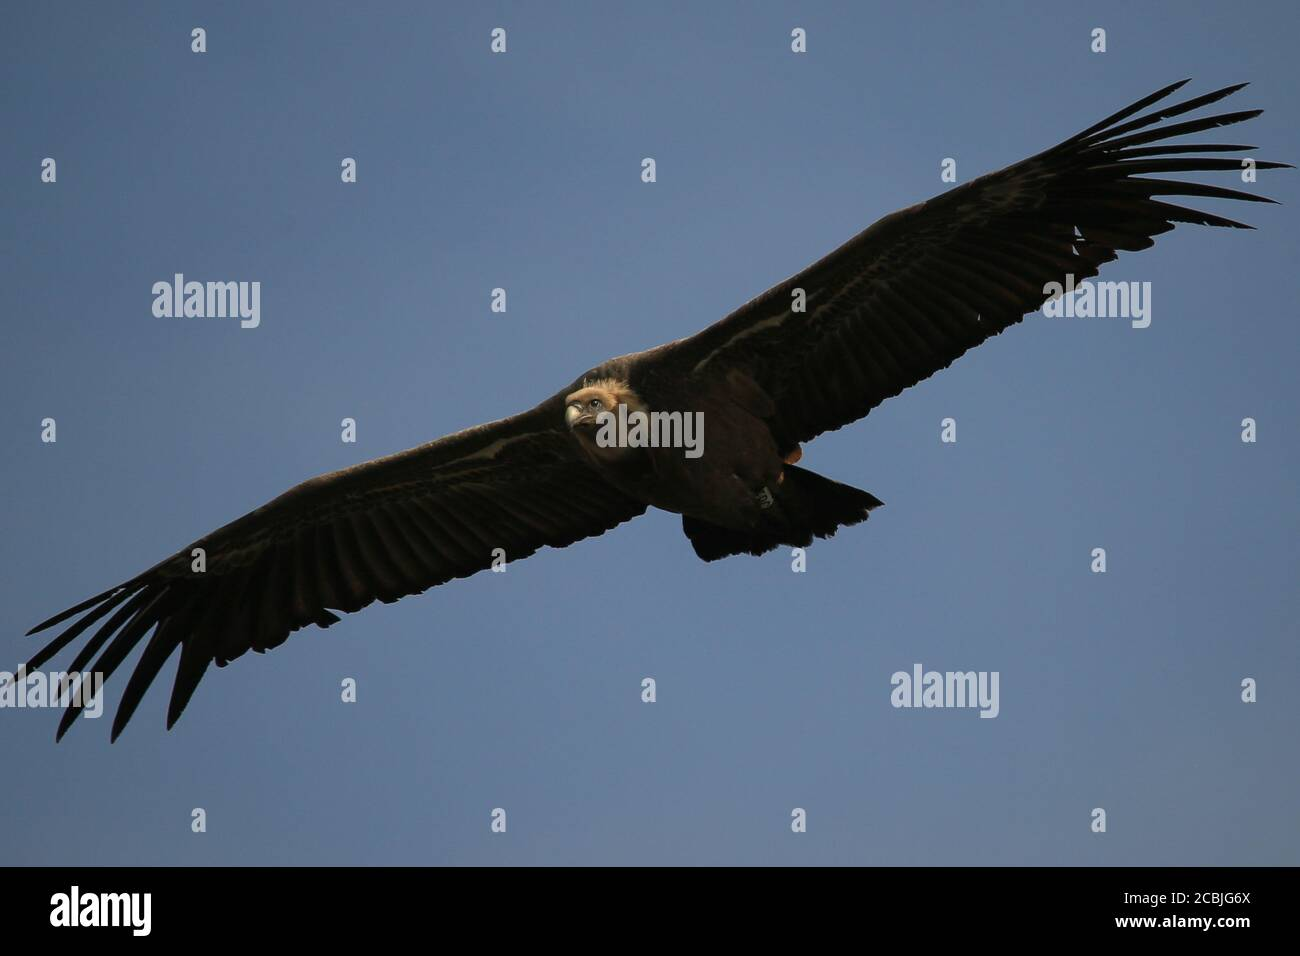 Griffon Vulture flying in the Gorges du Verdon, Provence, France. Stock Photo